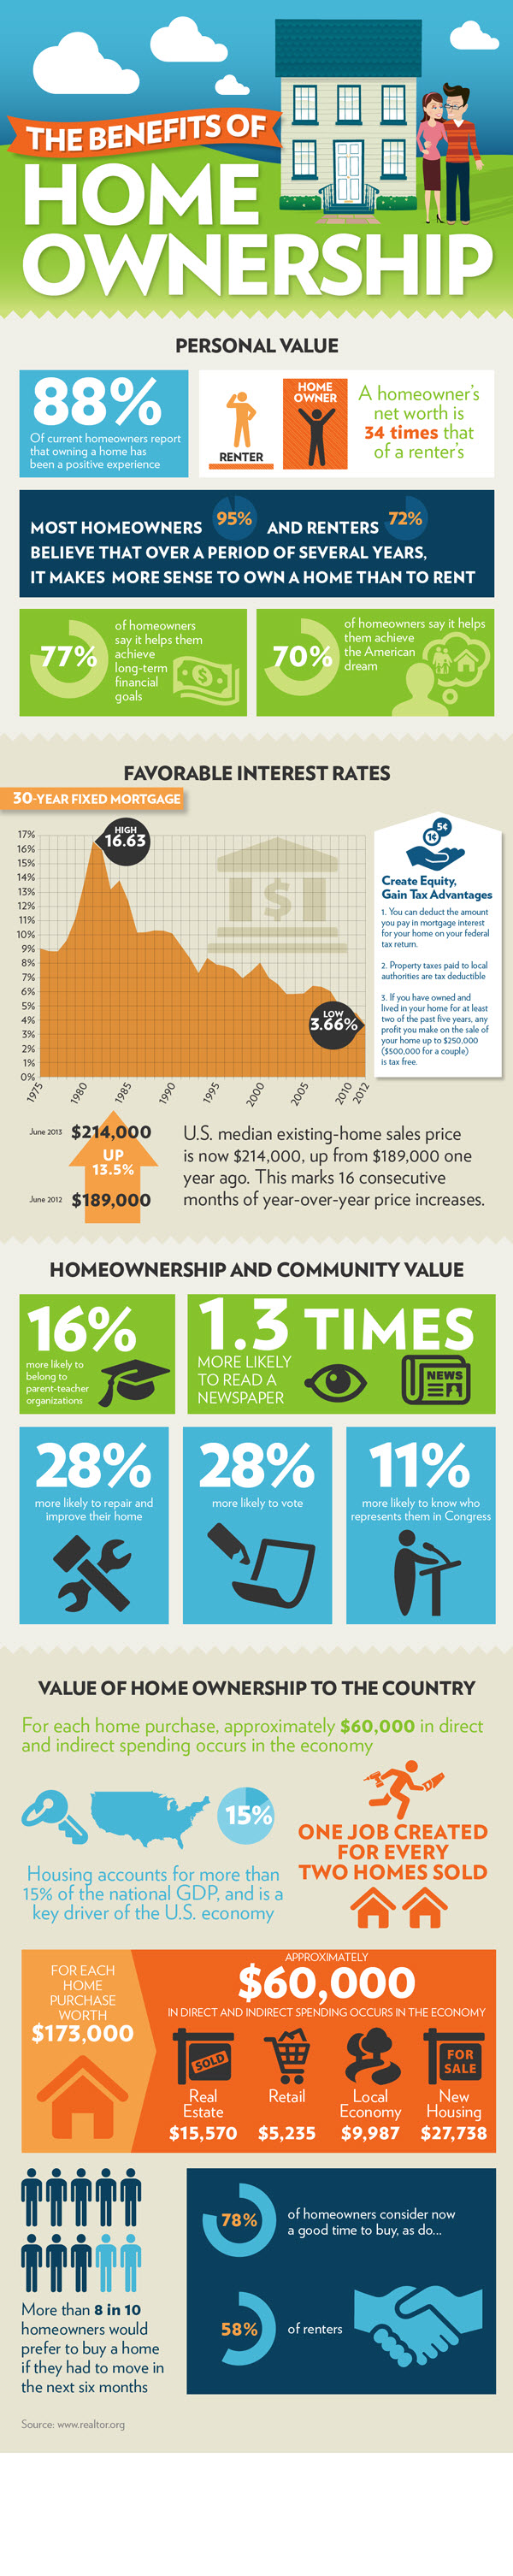 The Benefits of Home Ownership